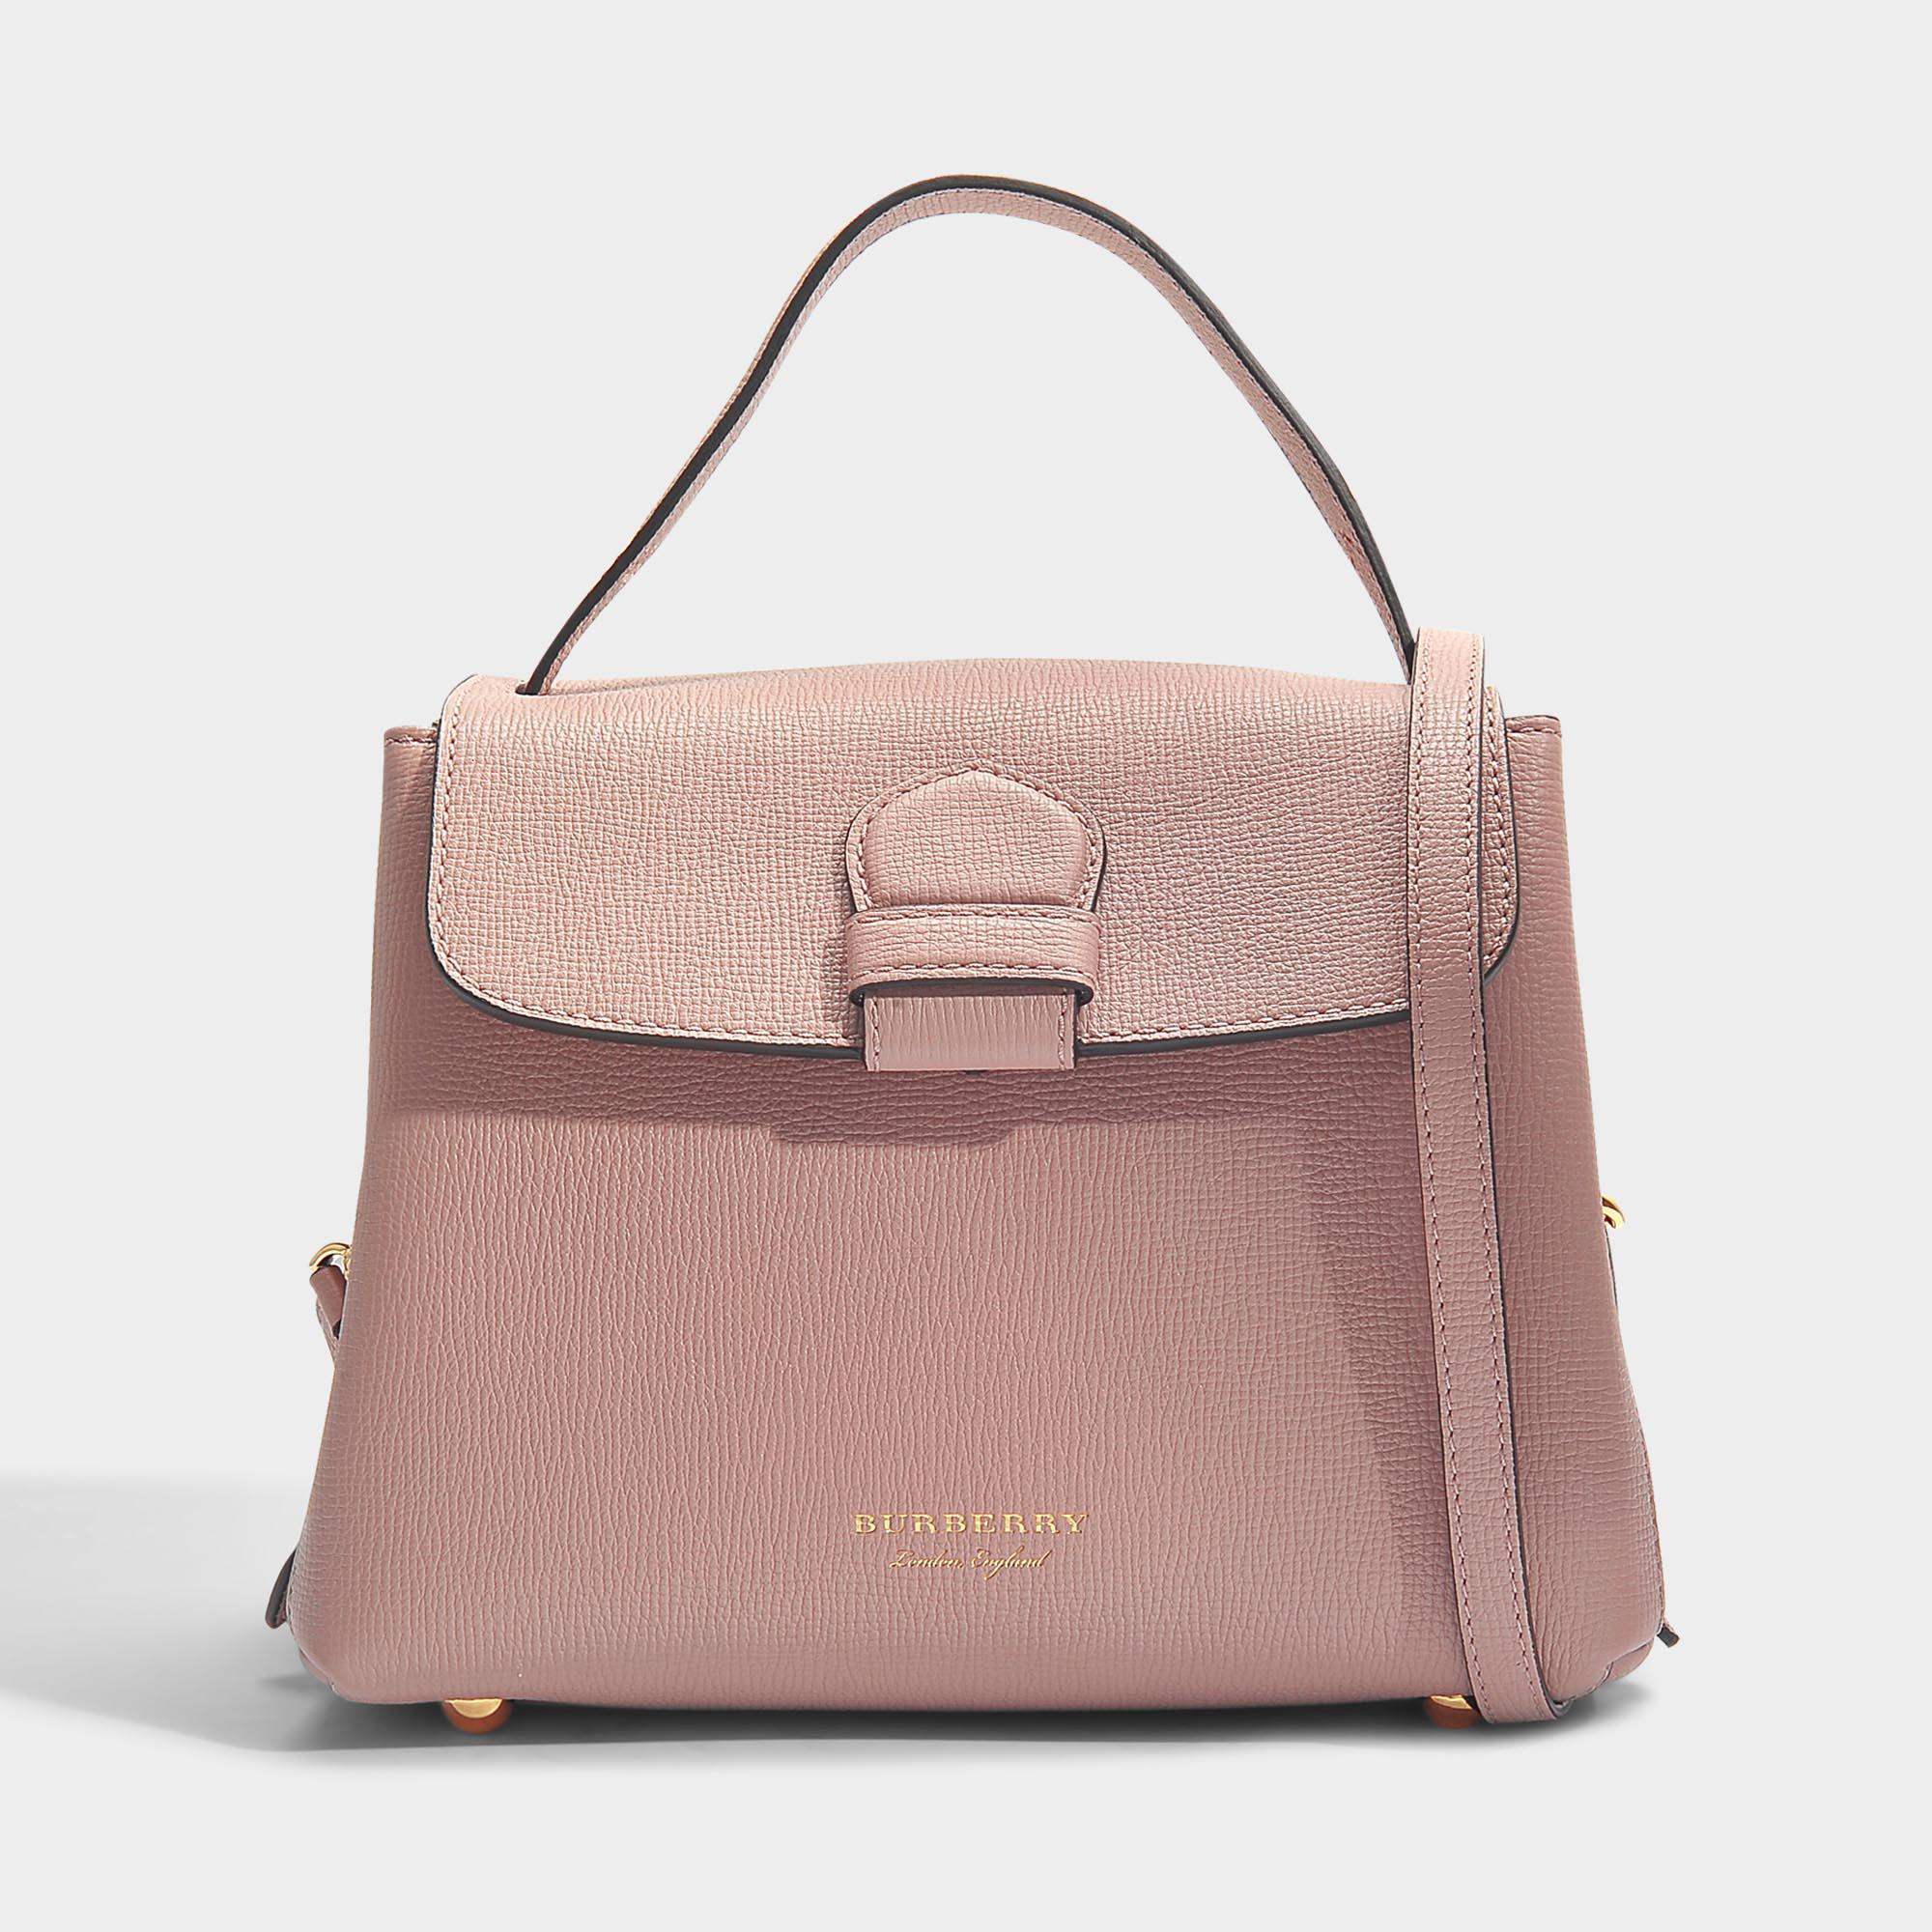 3971e13db986 Burberry Small Camberley Bag In Pale Orchid Grained Calfskin - Lyst